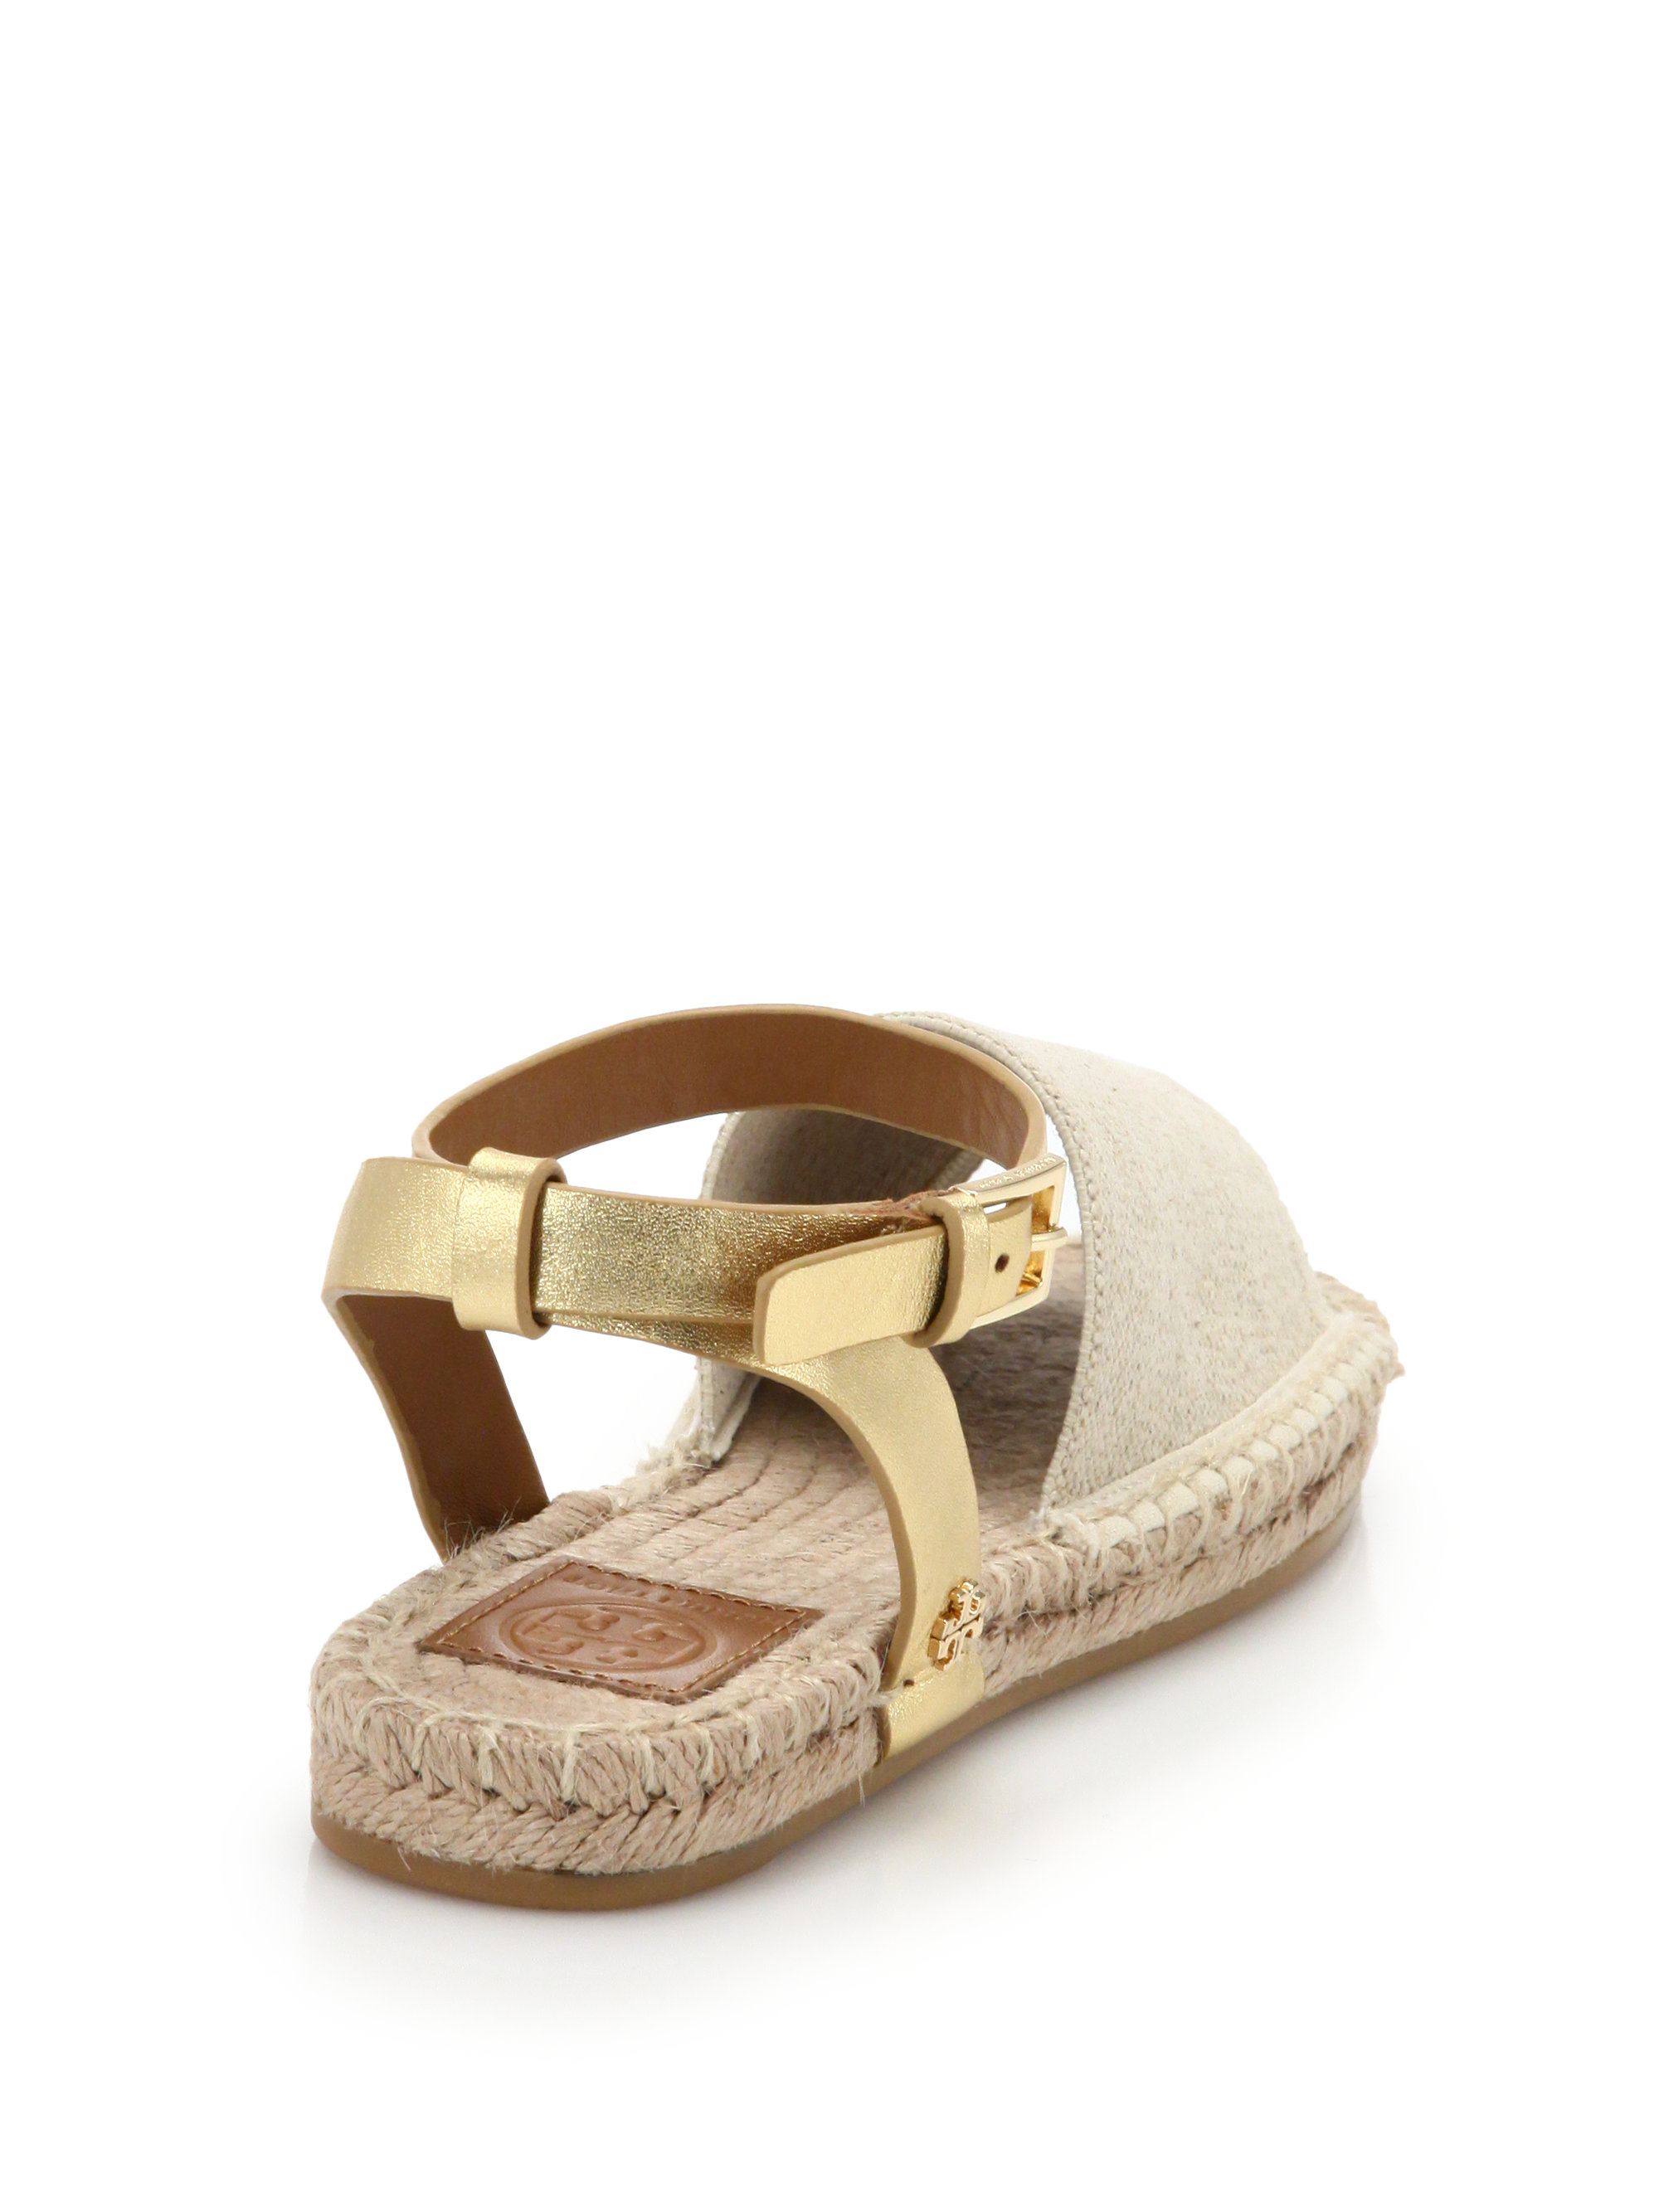 Tory Burch Woven Metallic Sandals explore cheap price low price cheap price sale recommend authentic QkORxv